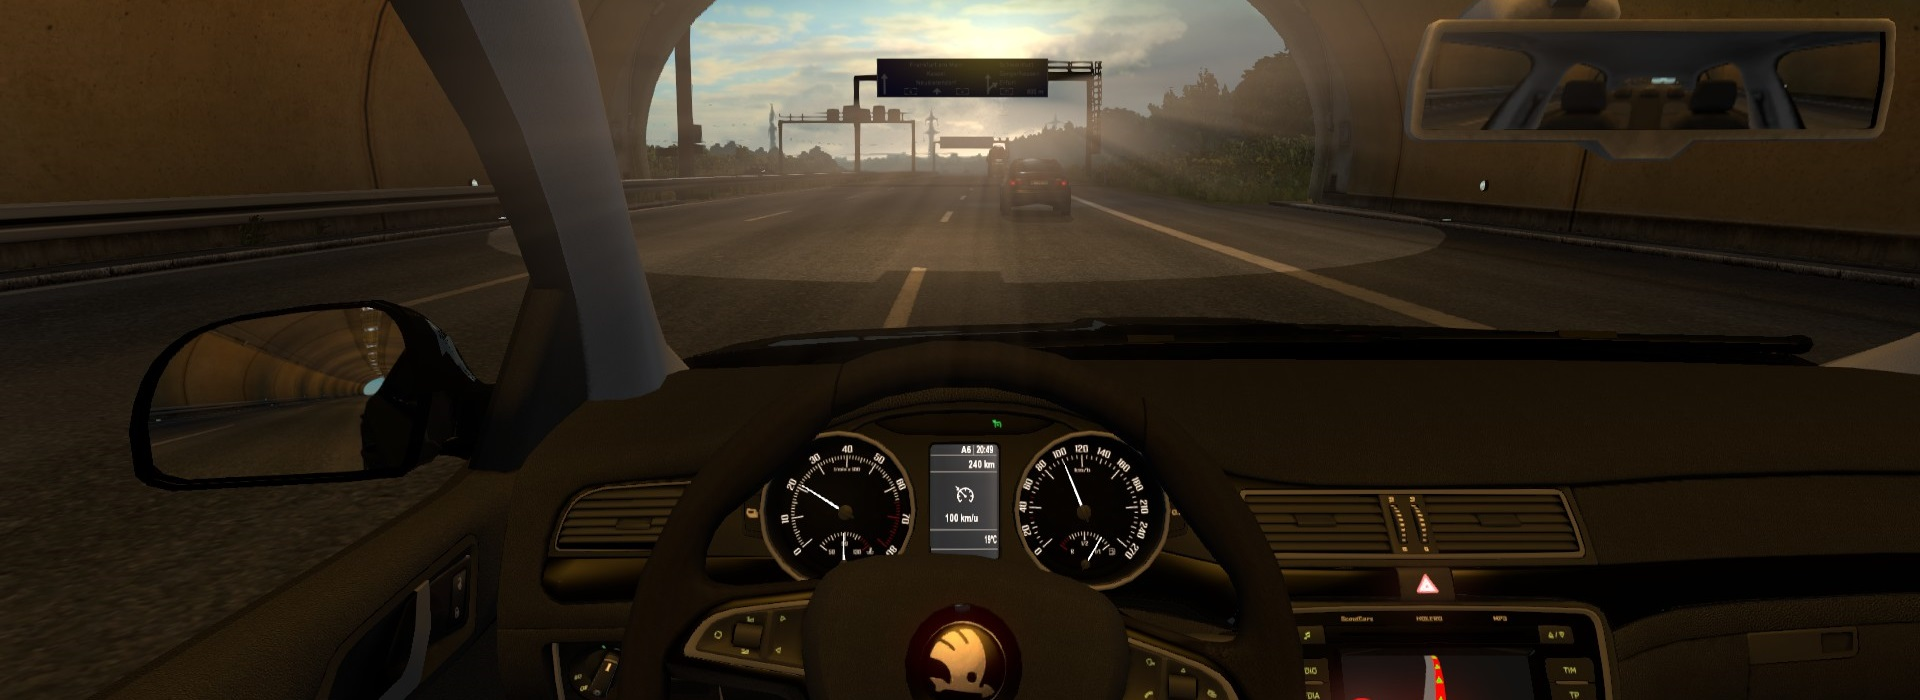 Euro Truck Simulator 2 - Driving with a car is possible as well!